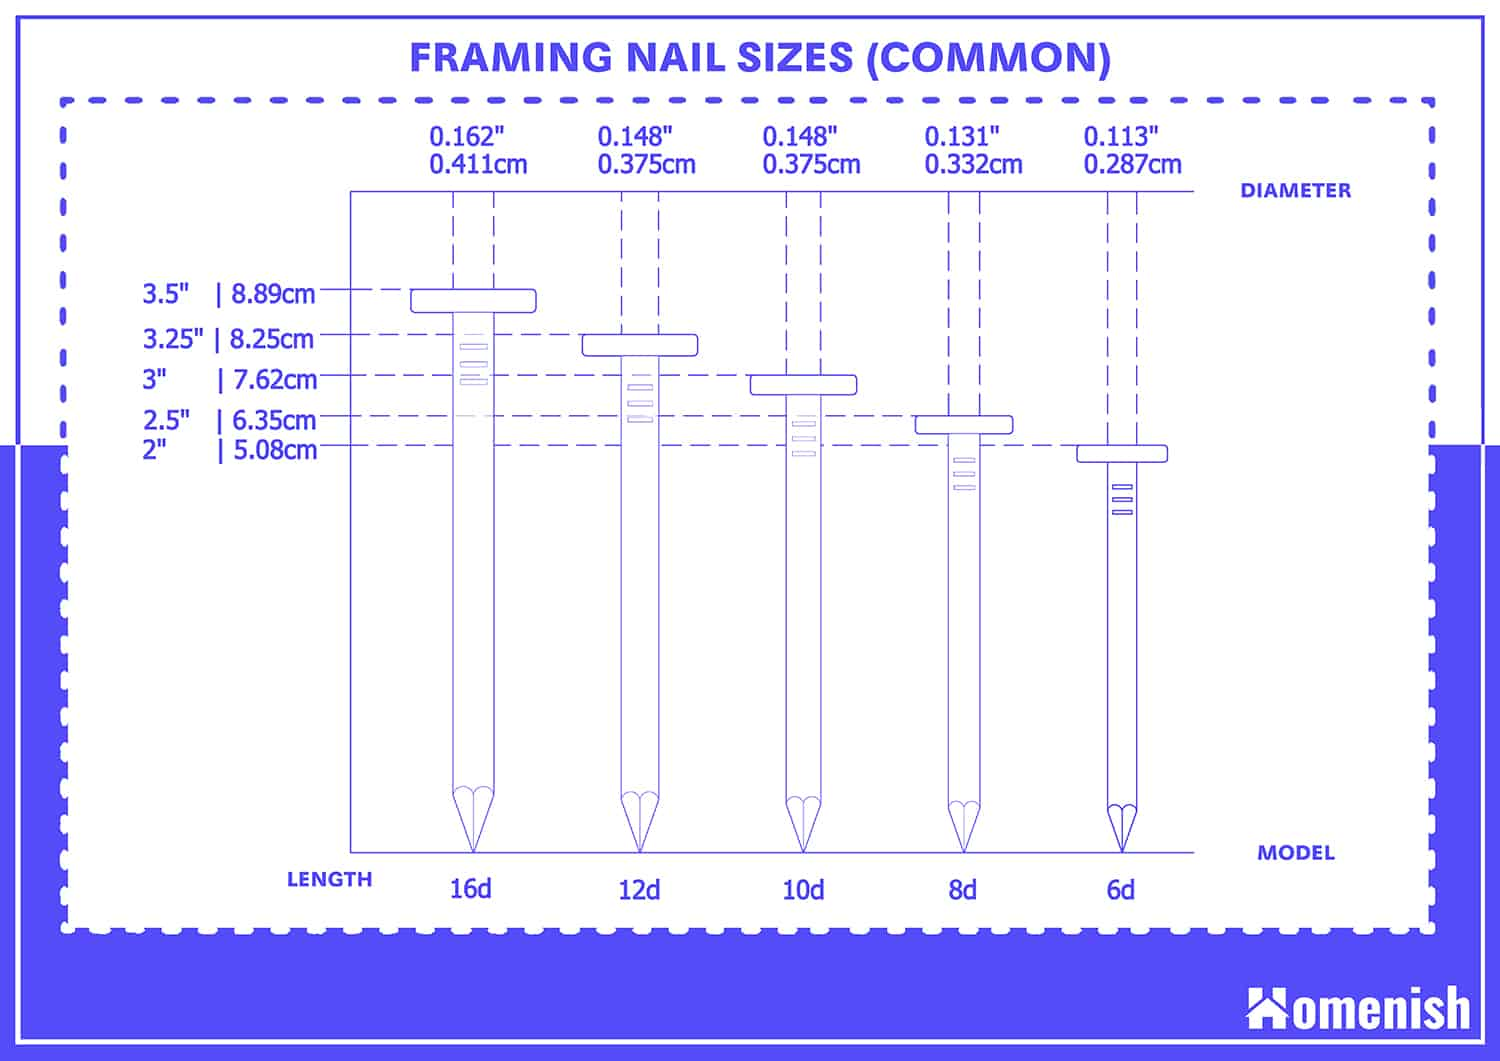 Common Nails and Their Sizes